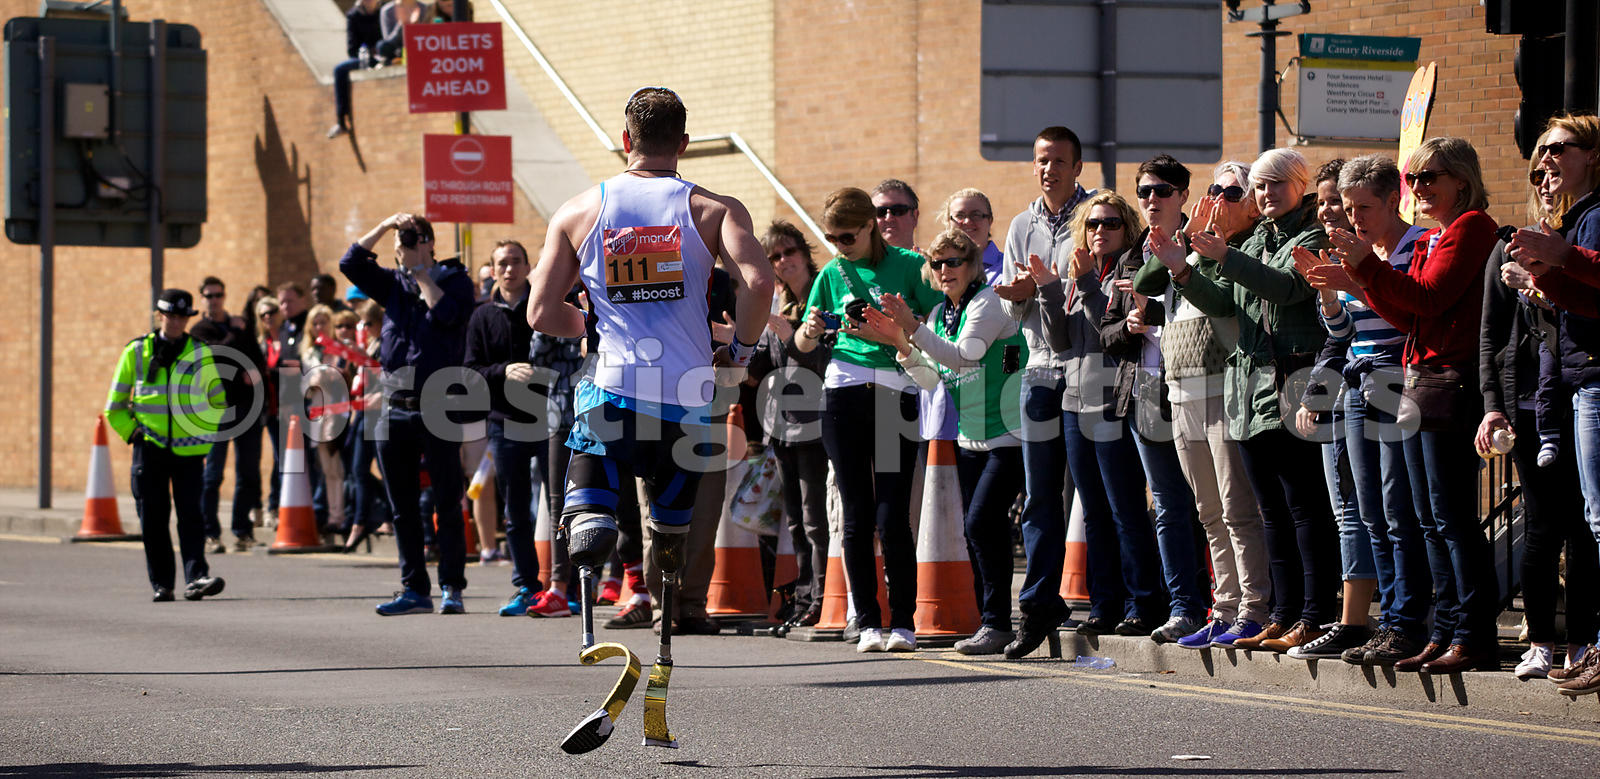 Richard Whitehead of Great Britain running in the IPC World Cup T42 event at the 2014 London Marathon